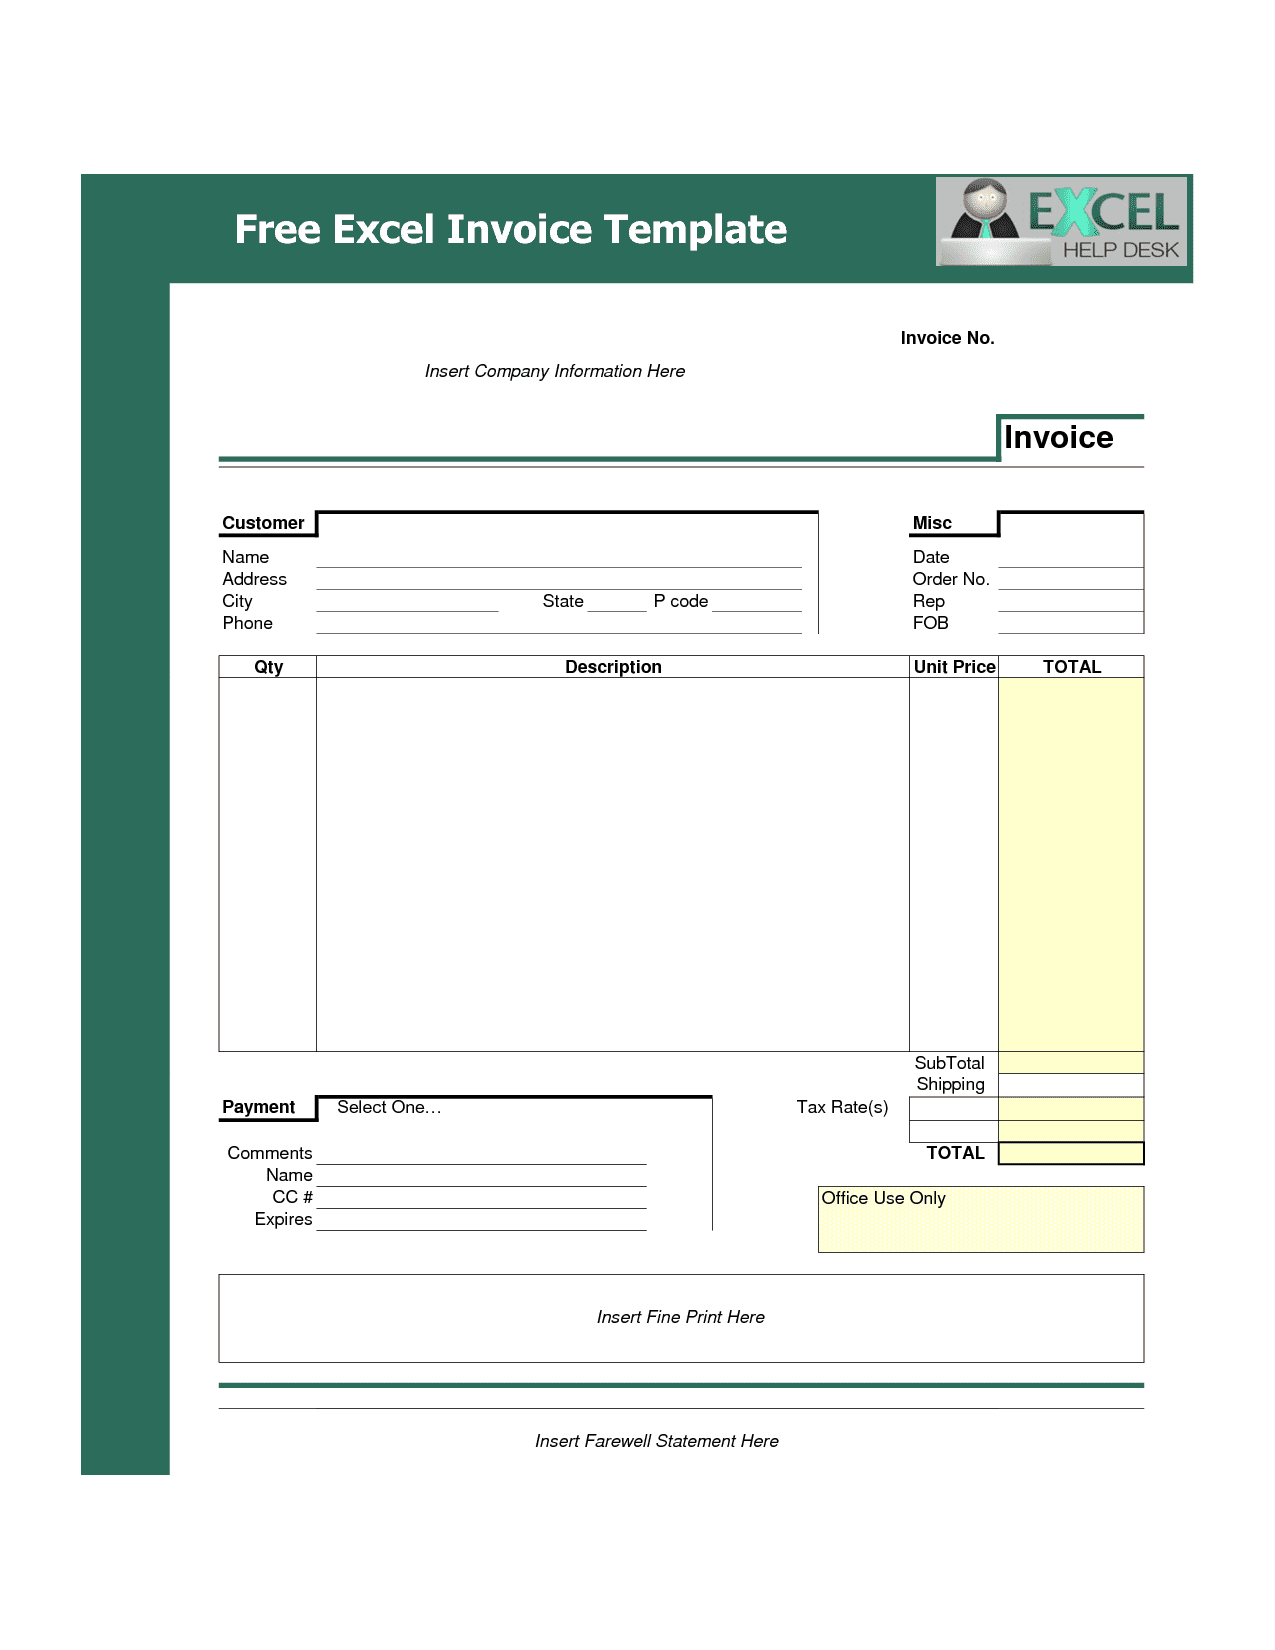 Invoice Template Word Download Free Invoice Template Excel Free Download Spreadsheet Templates for Busines Spreadsheet Templates for Busines Free Invoice Template